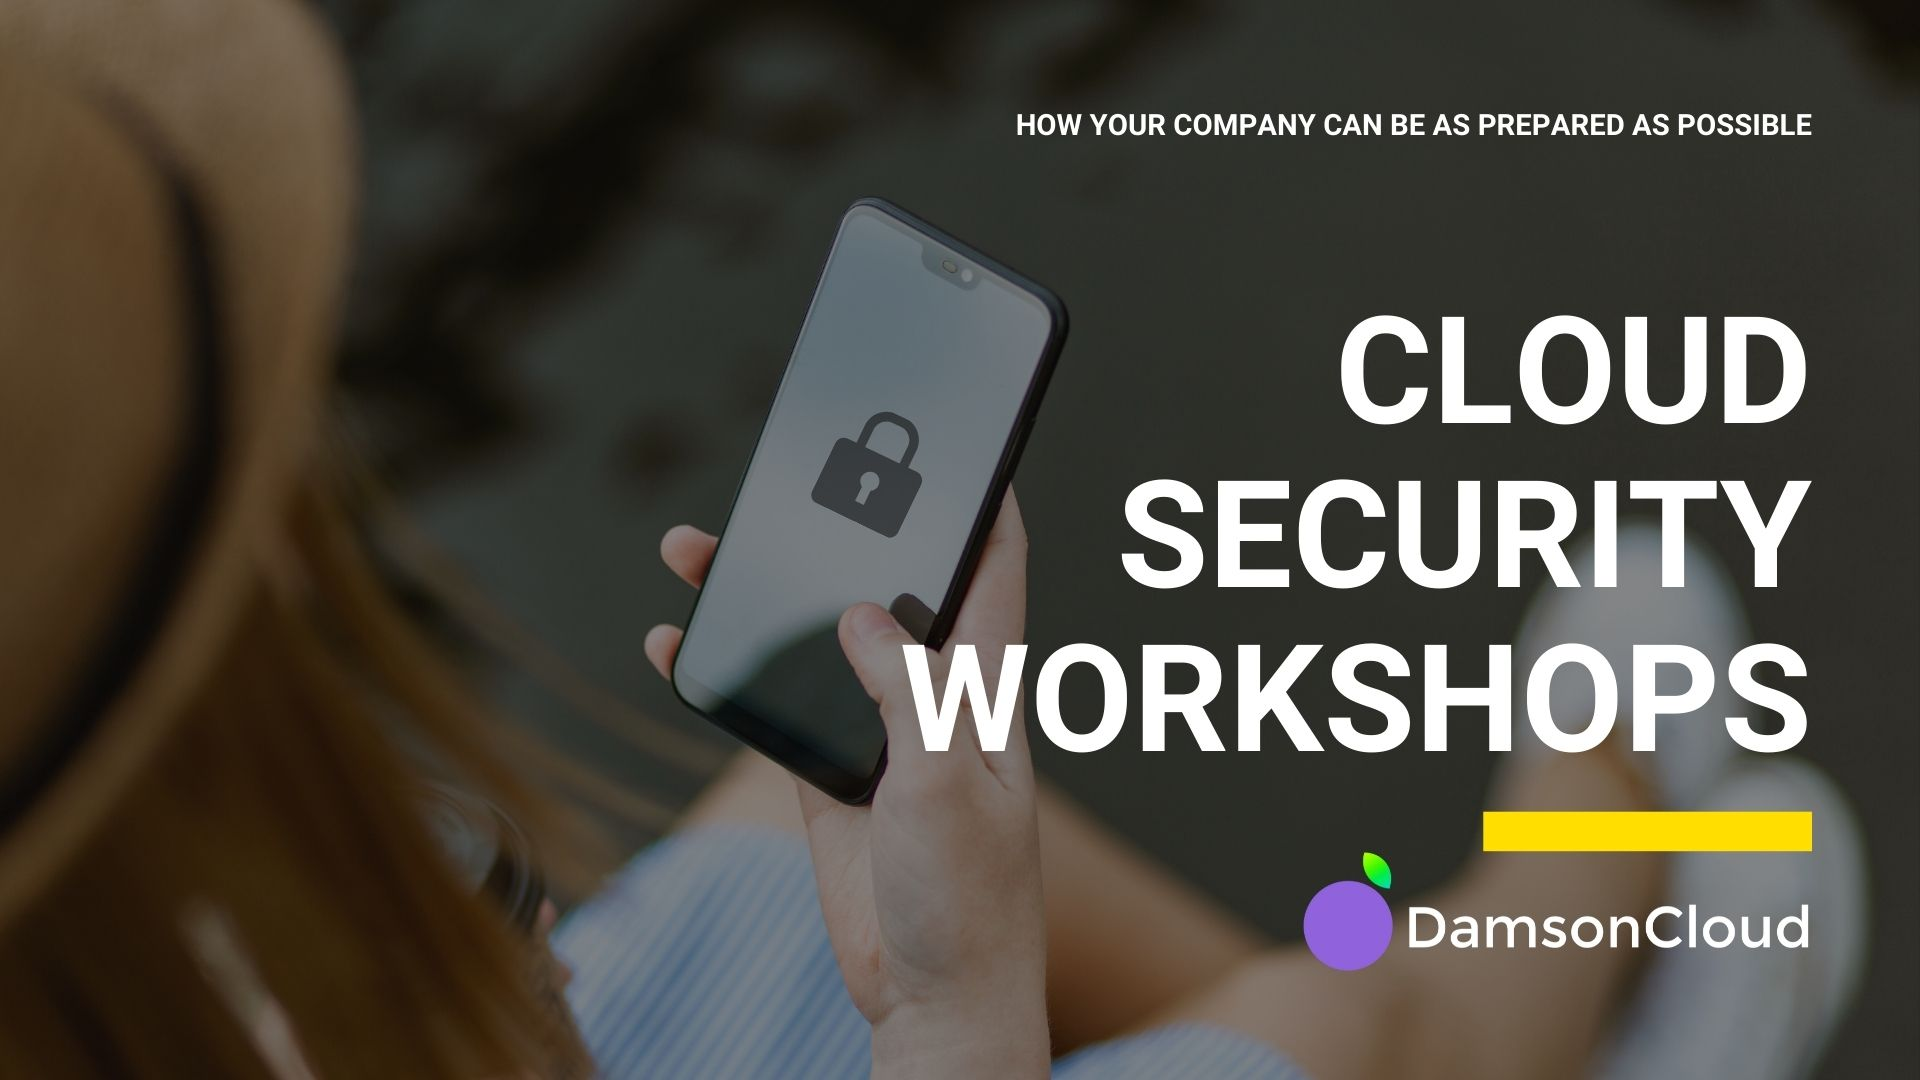 The Benefits of Cloud Security Workshops